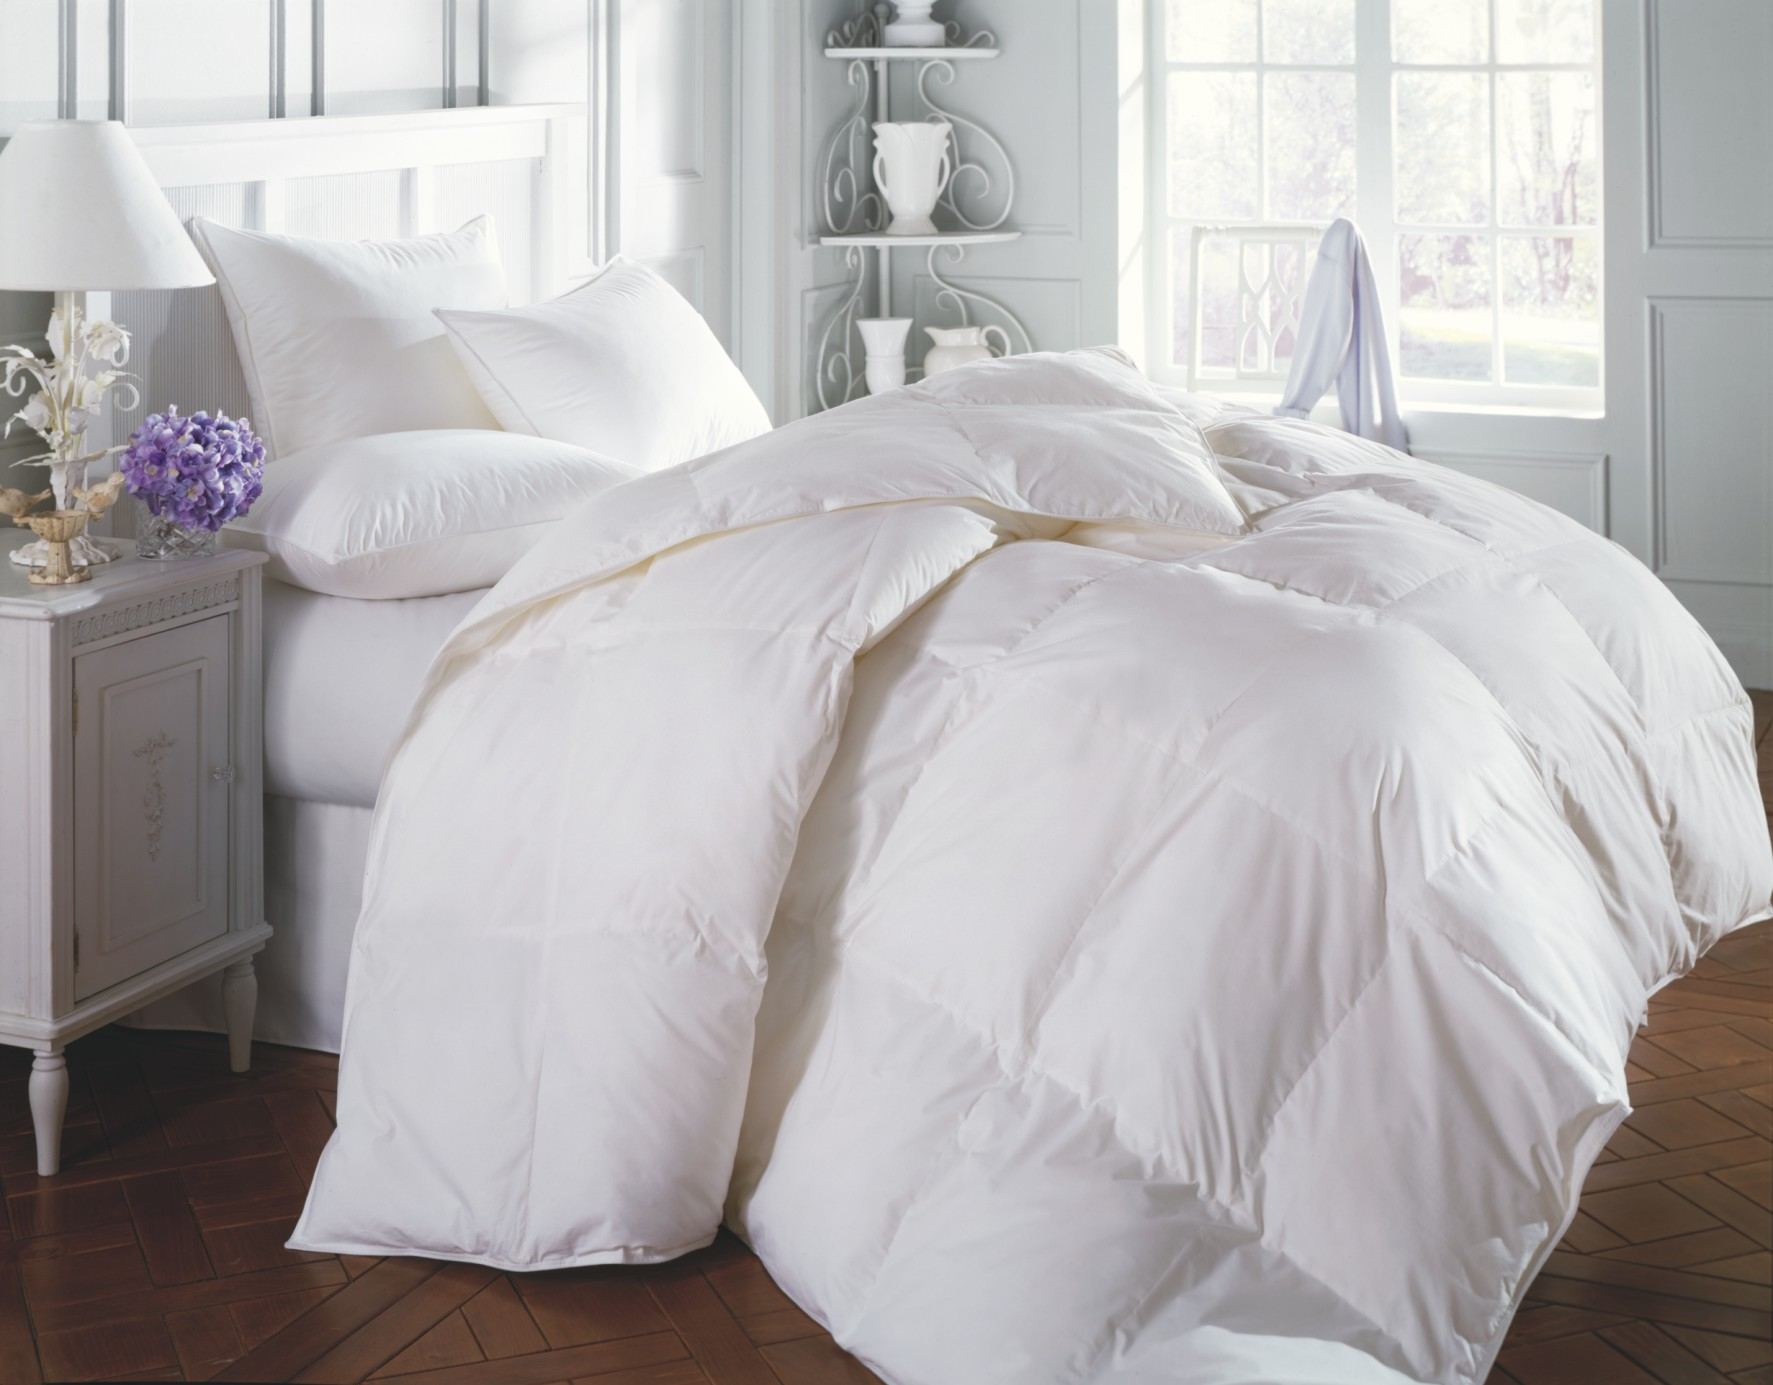 The Down Factory Store Offers Down Bed Comforters And Discount Down Pillows Allusion Synthetic